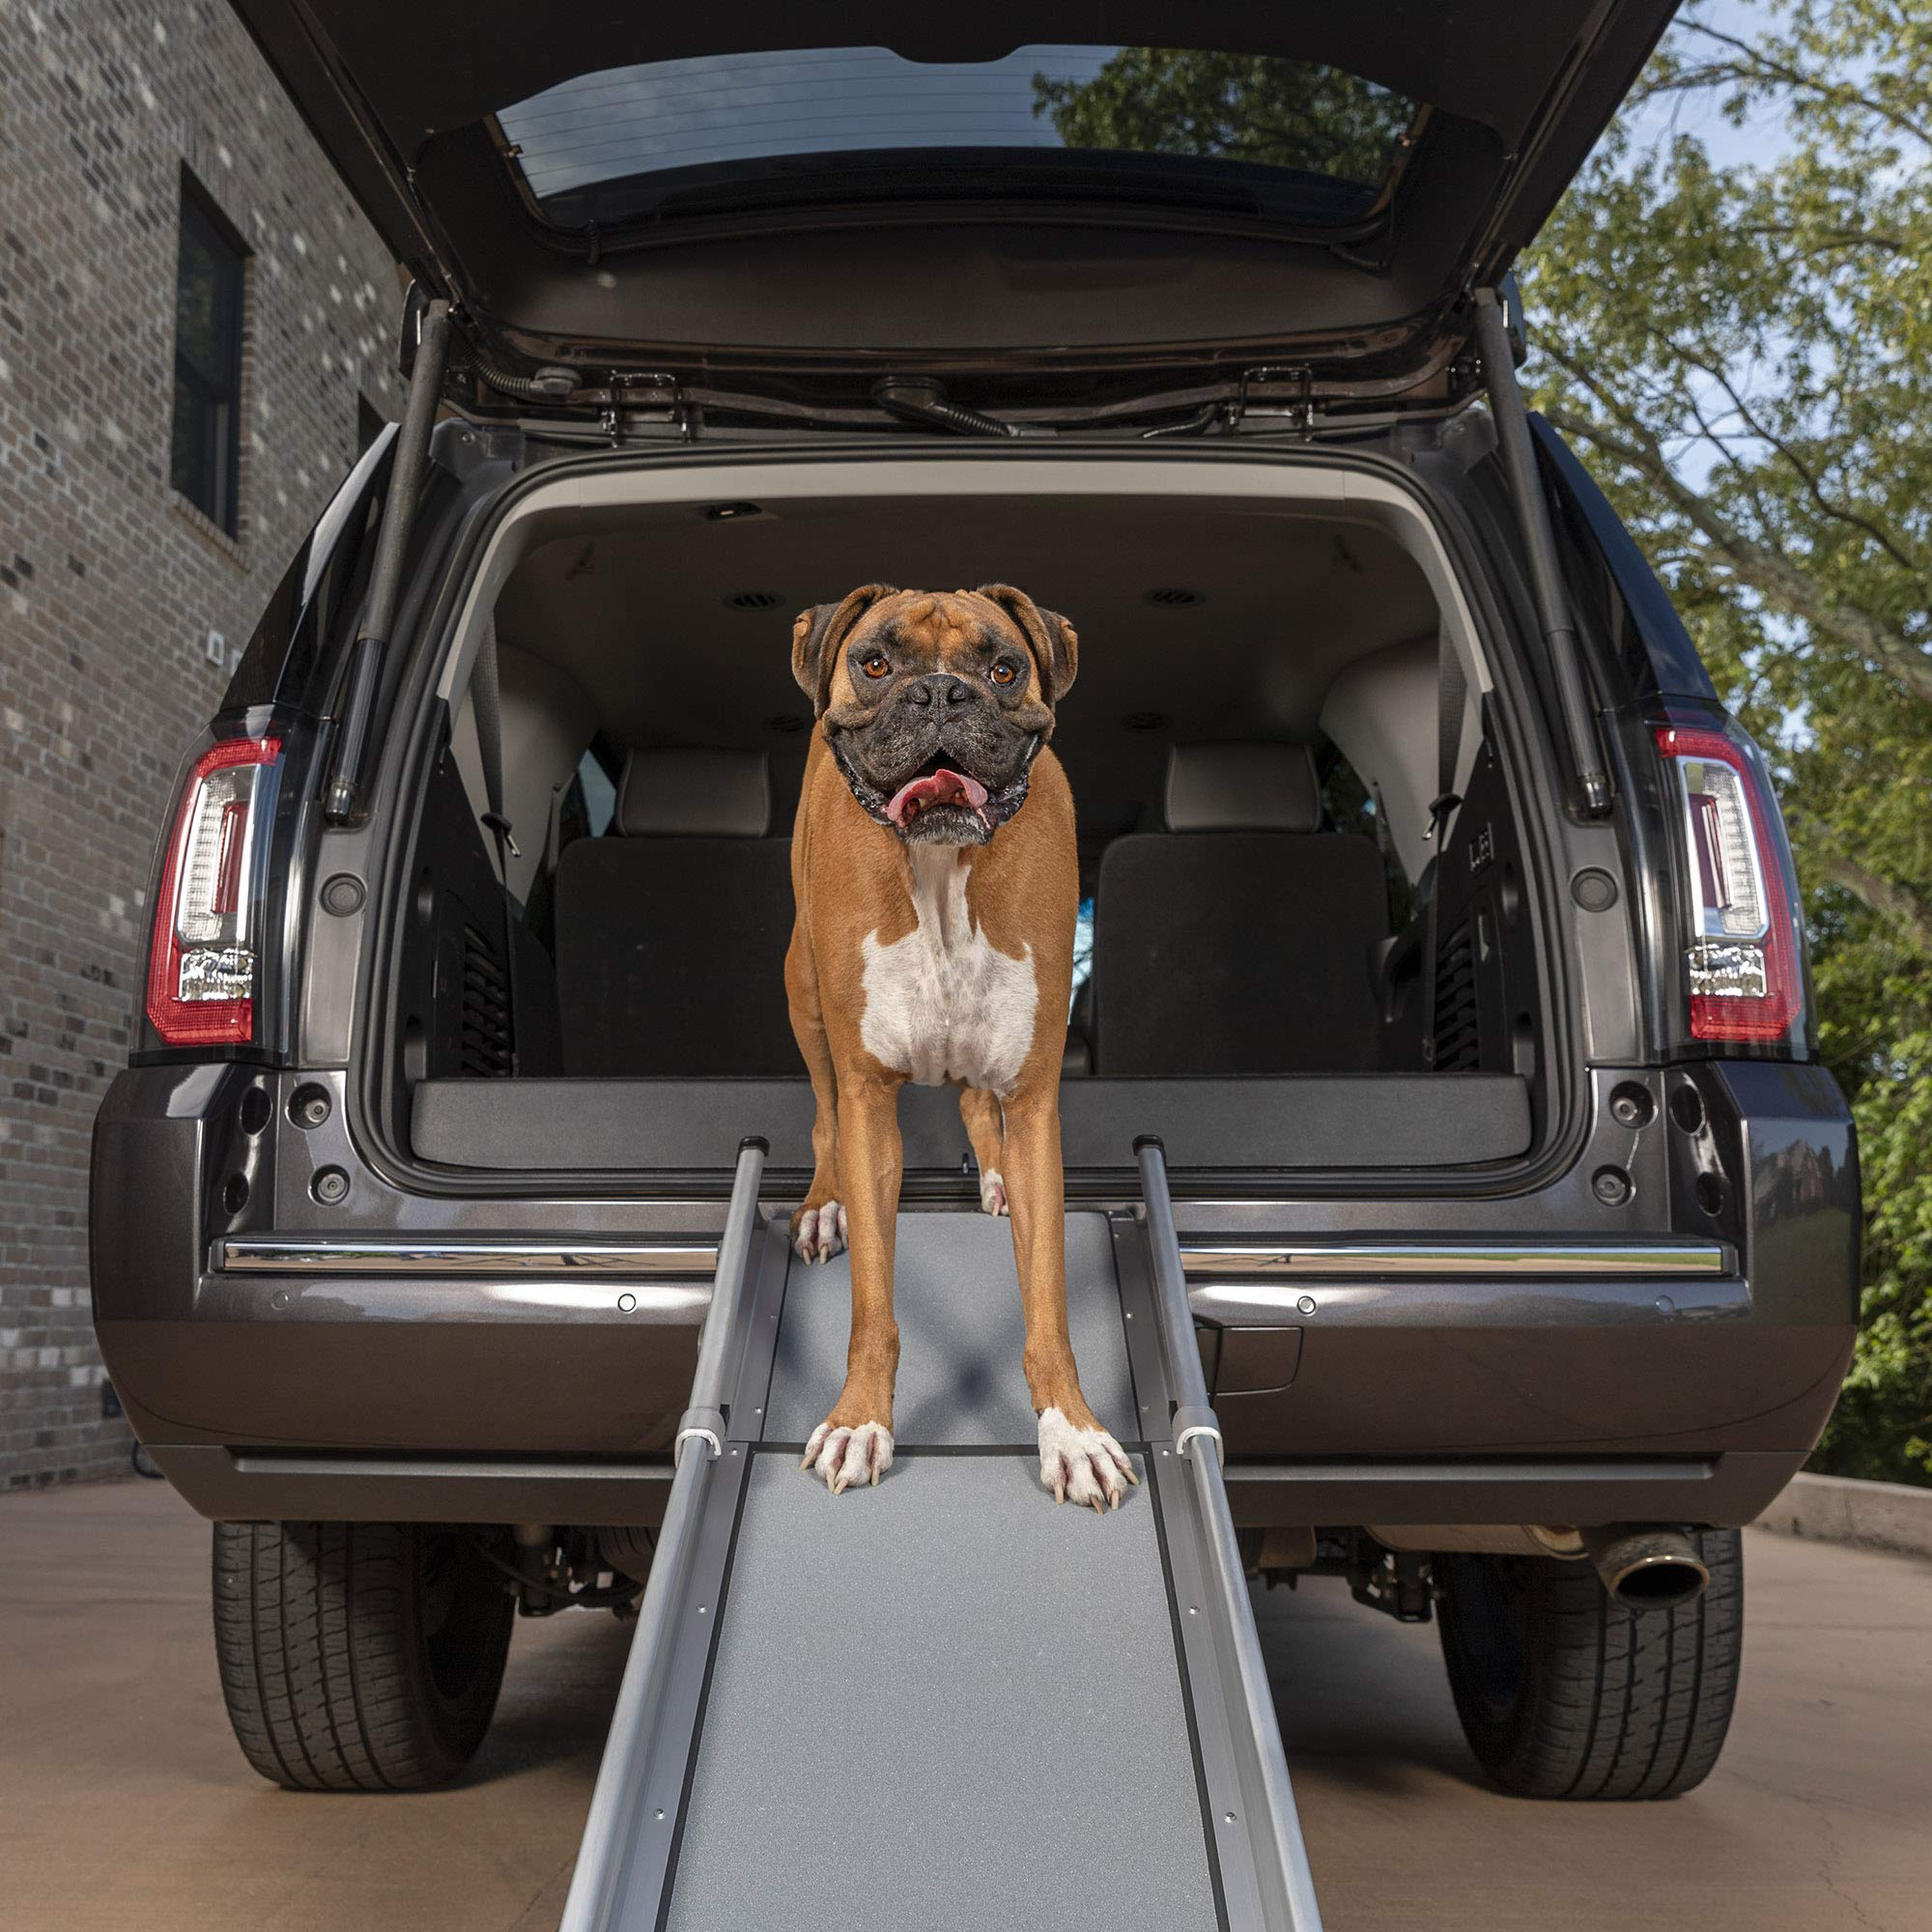 PetSafe Happy Ride Compact Telescoping Dog Ramp - Portable Lightweight Pet Ramp - Great for Cars, Trucks and SUVs - Durable Aluminum Frame Supports up to 300 lb - High Traction Surface Design by PetSafe